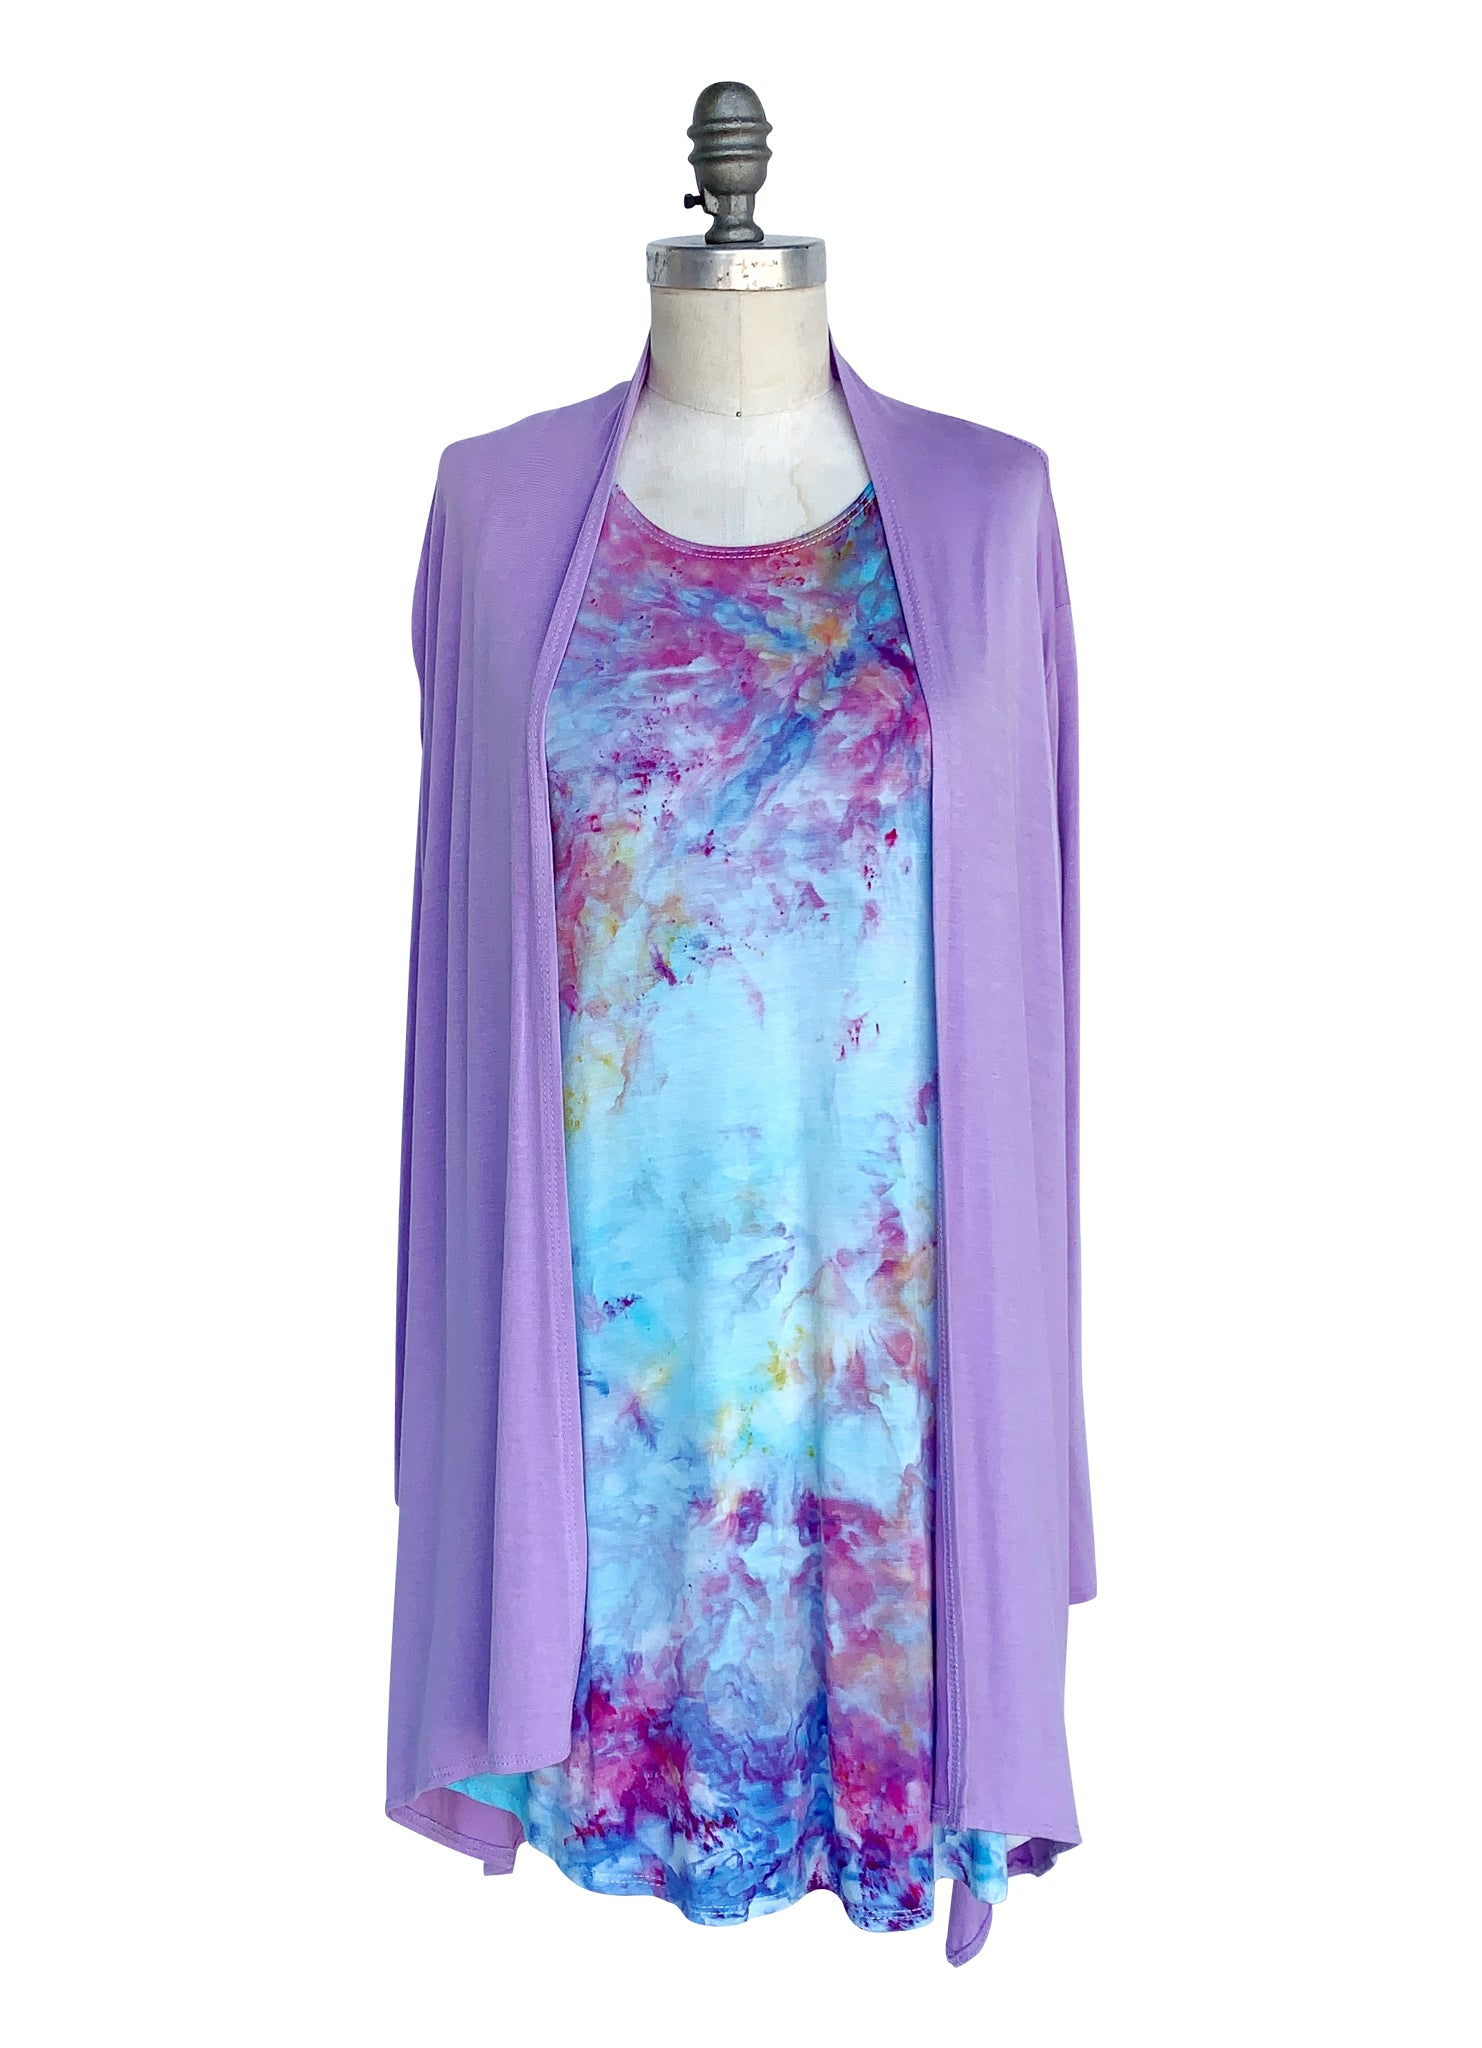 A-Line Tunic Tank and Drape Front Jacket Bundle in Lavender-Cotton Candy - Top - Dyetology